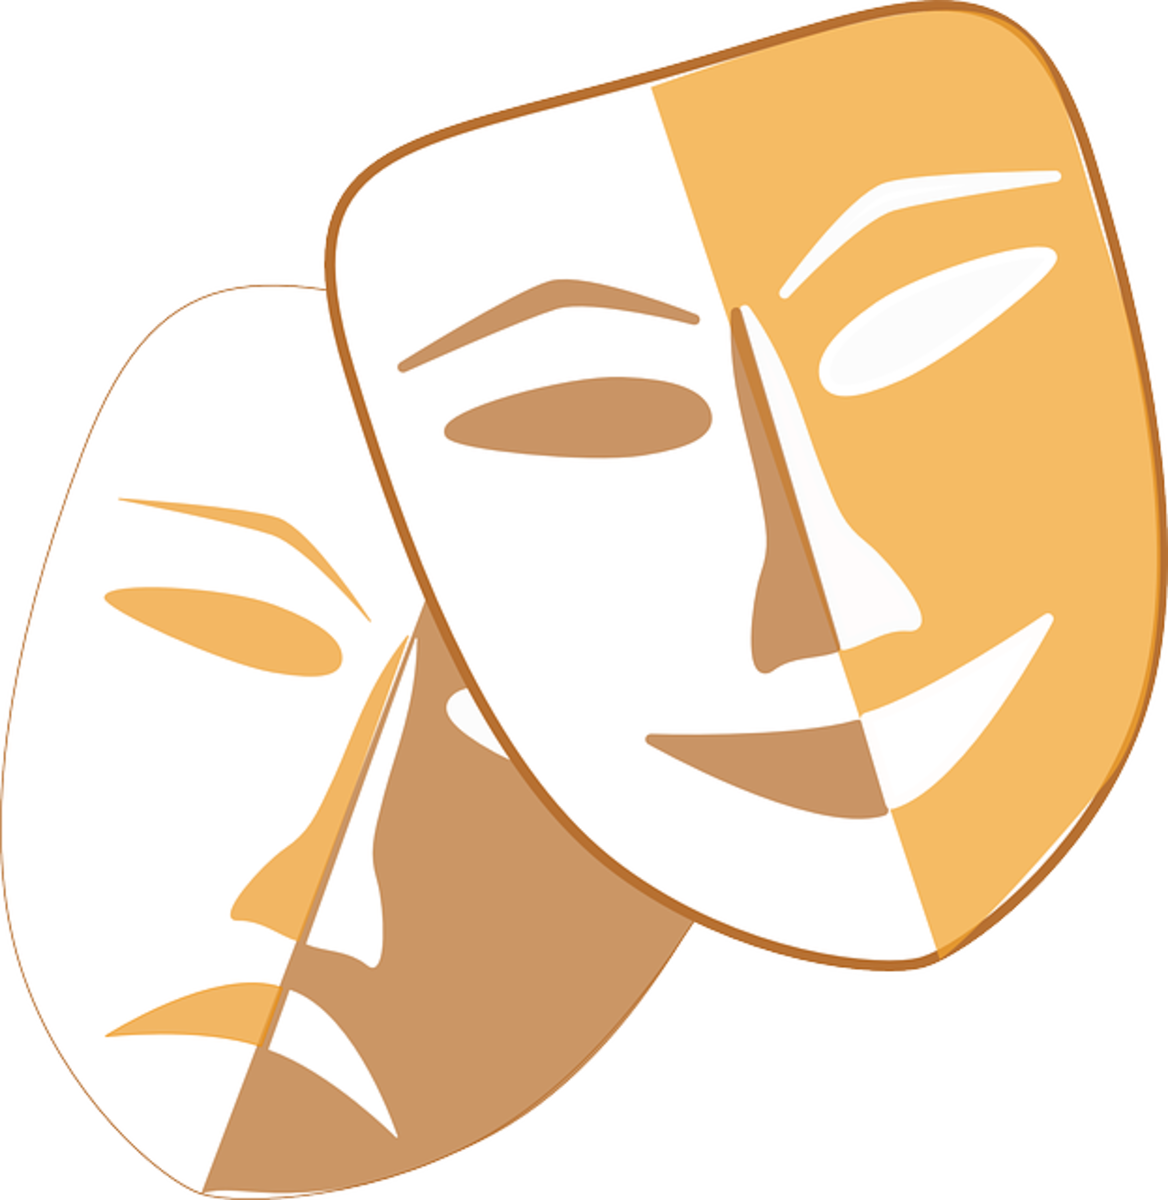 The happy and sad masks, representing comedy and tragedy, have represented the theater for centuries.